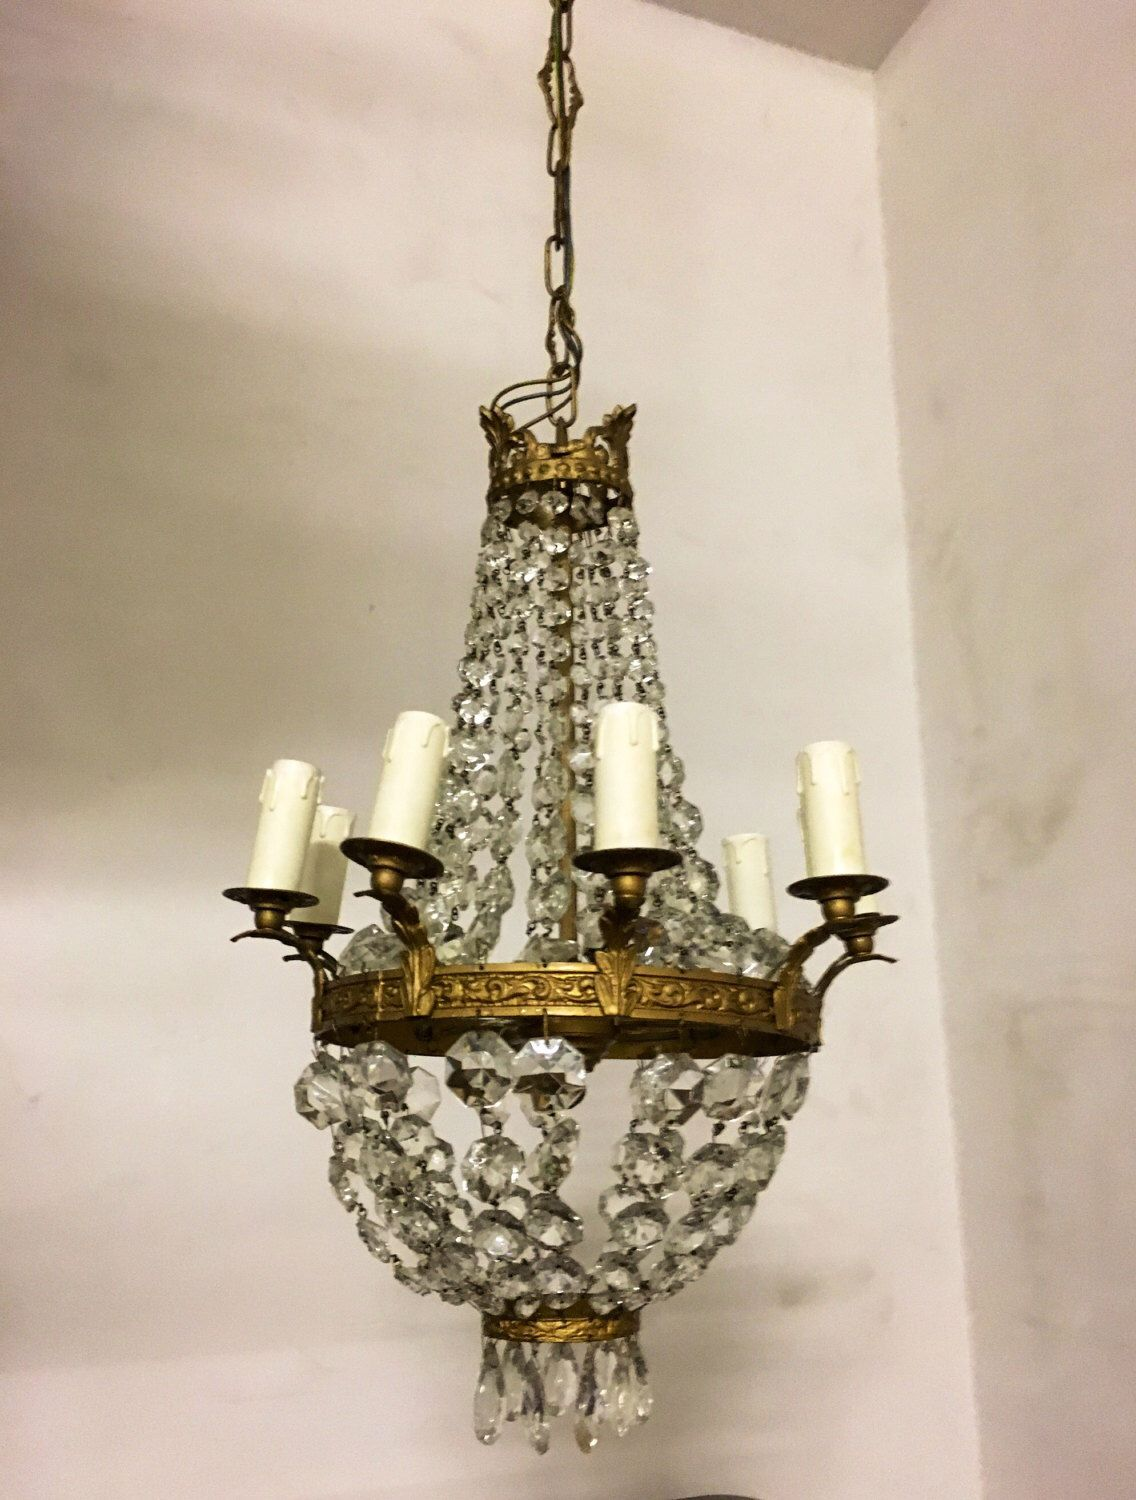 Crystal chandelier vintage empire chandelier shabby chic bronze vintage crystal chandelier etsy shop crystal chandelier vintage empire chandelier shabby chic arubaitofo Images